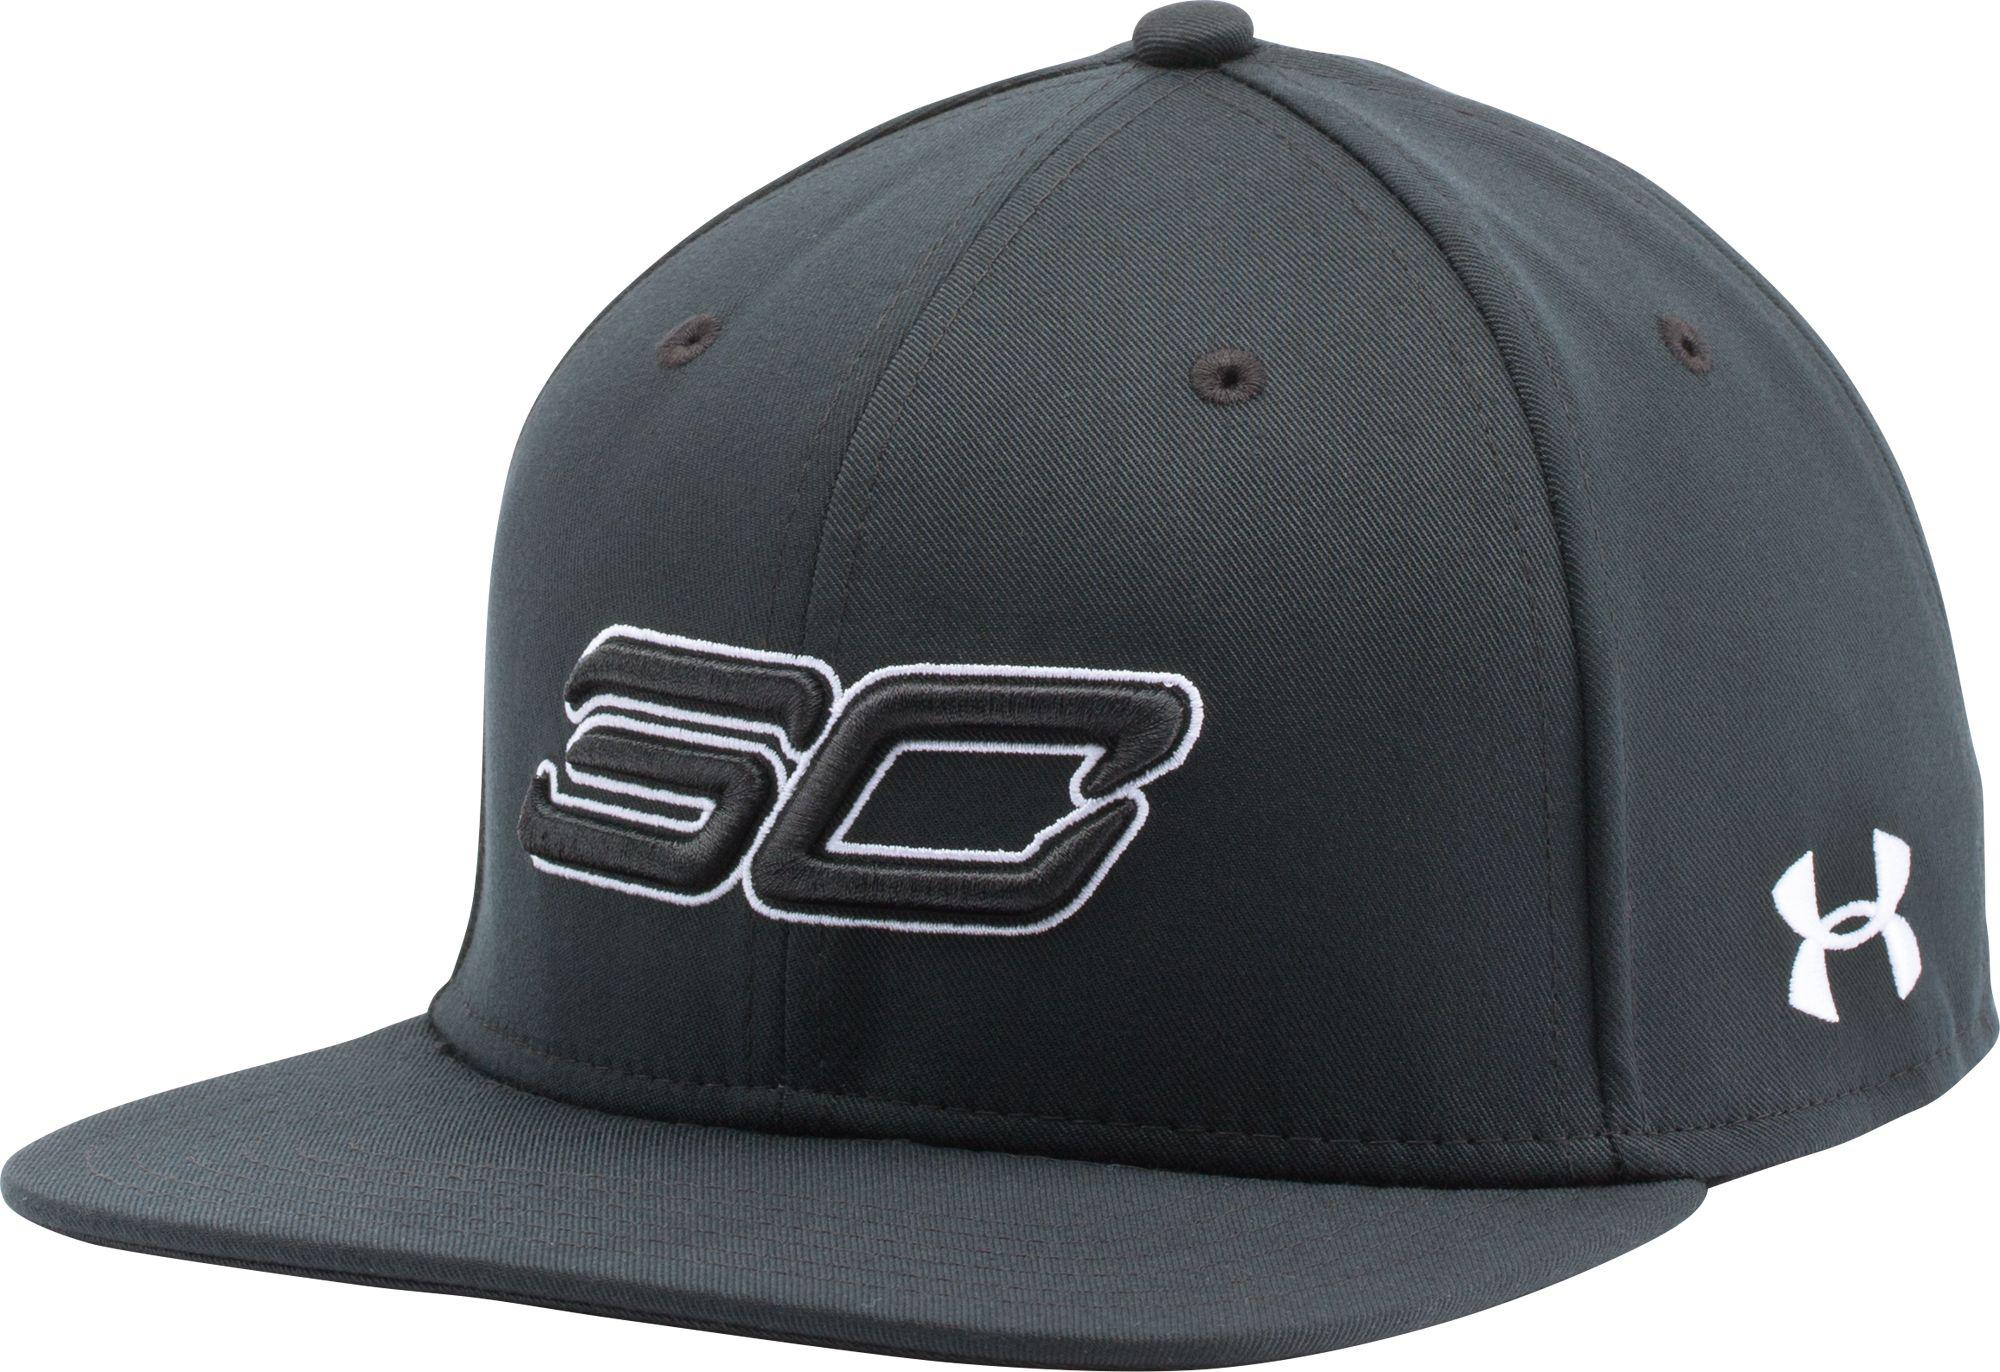 d8f18c94b8443 Lyst - Under Armour Sc30 Snapback Basketball Hat in Black for Men